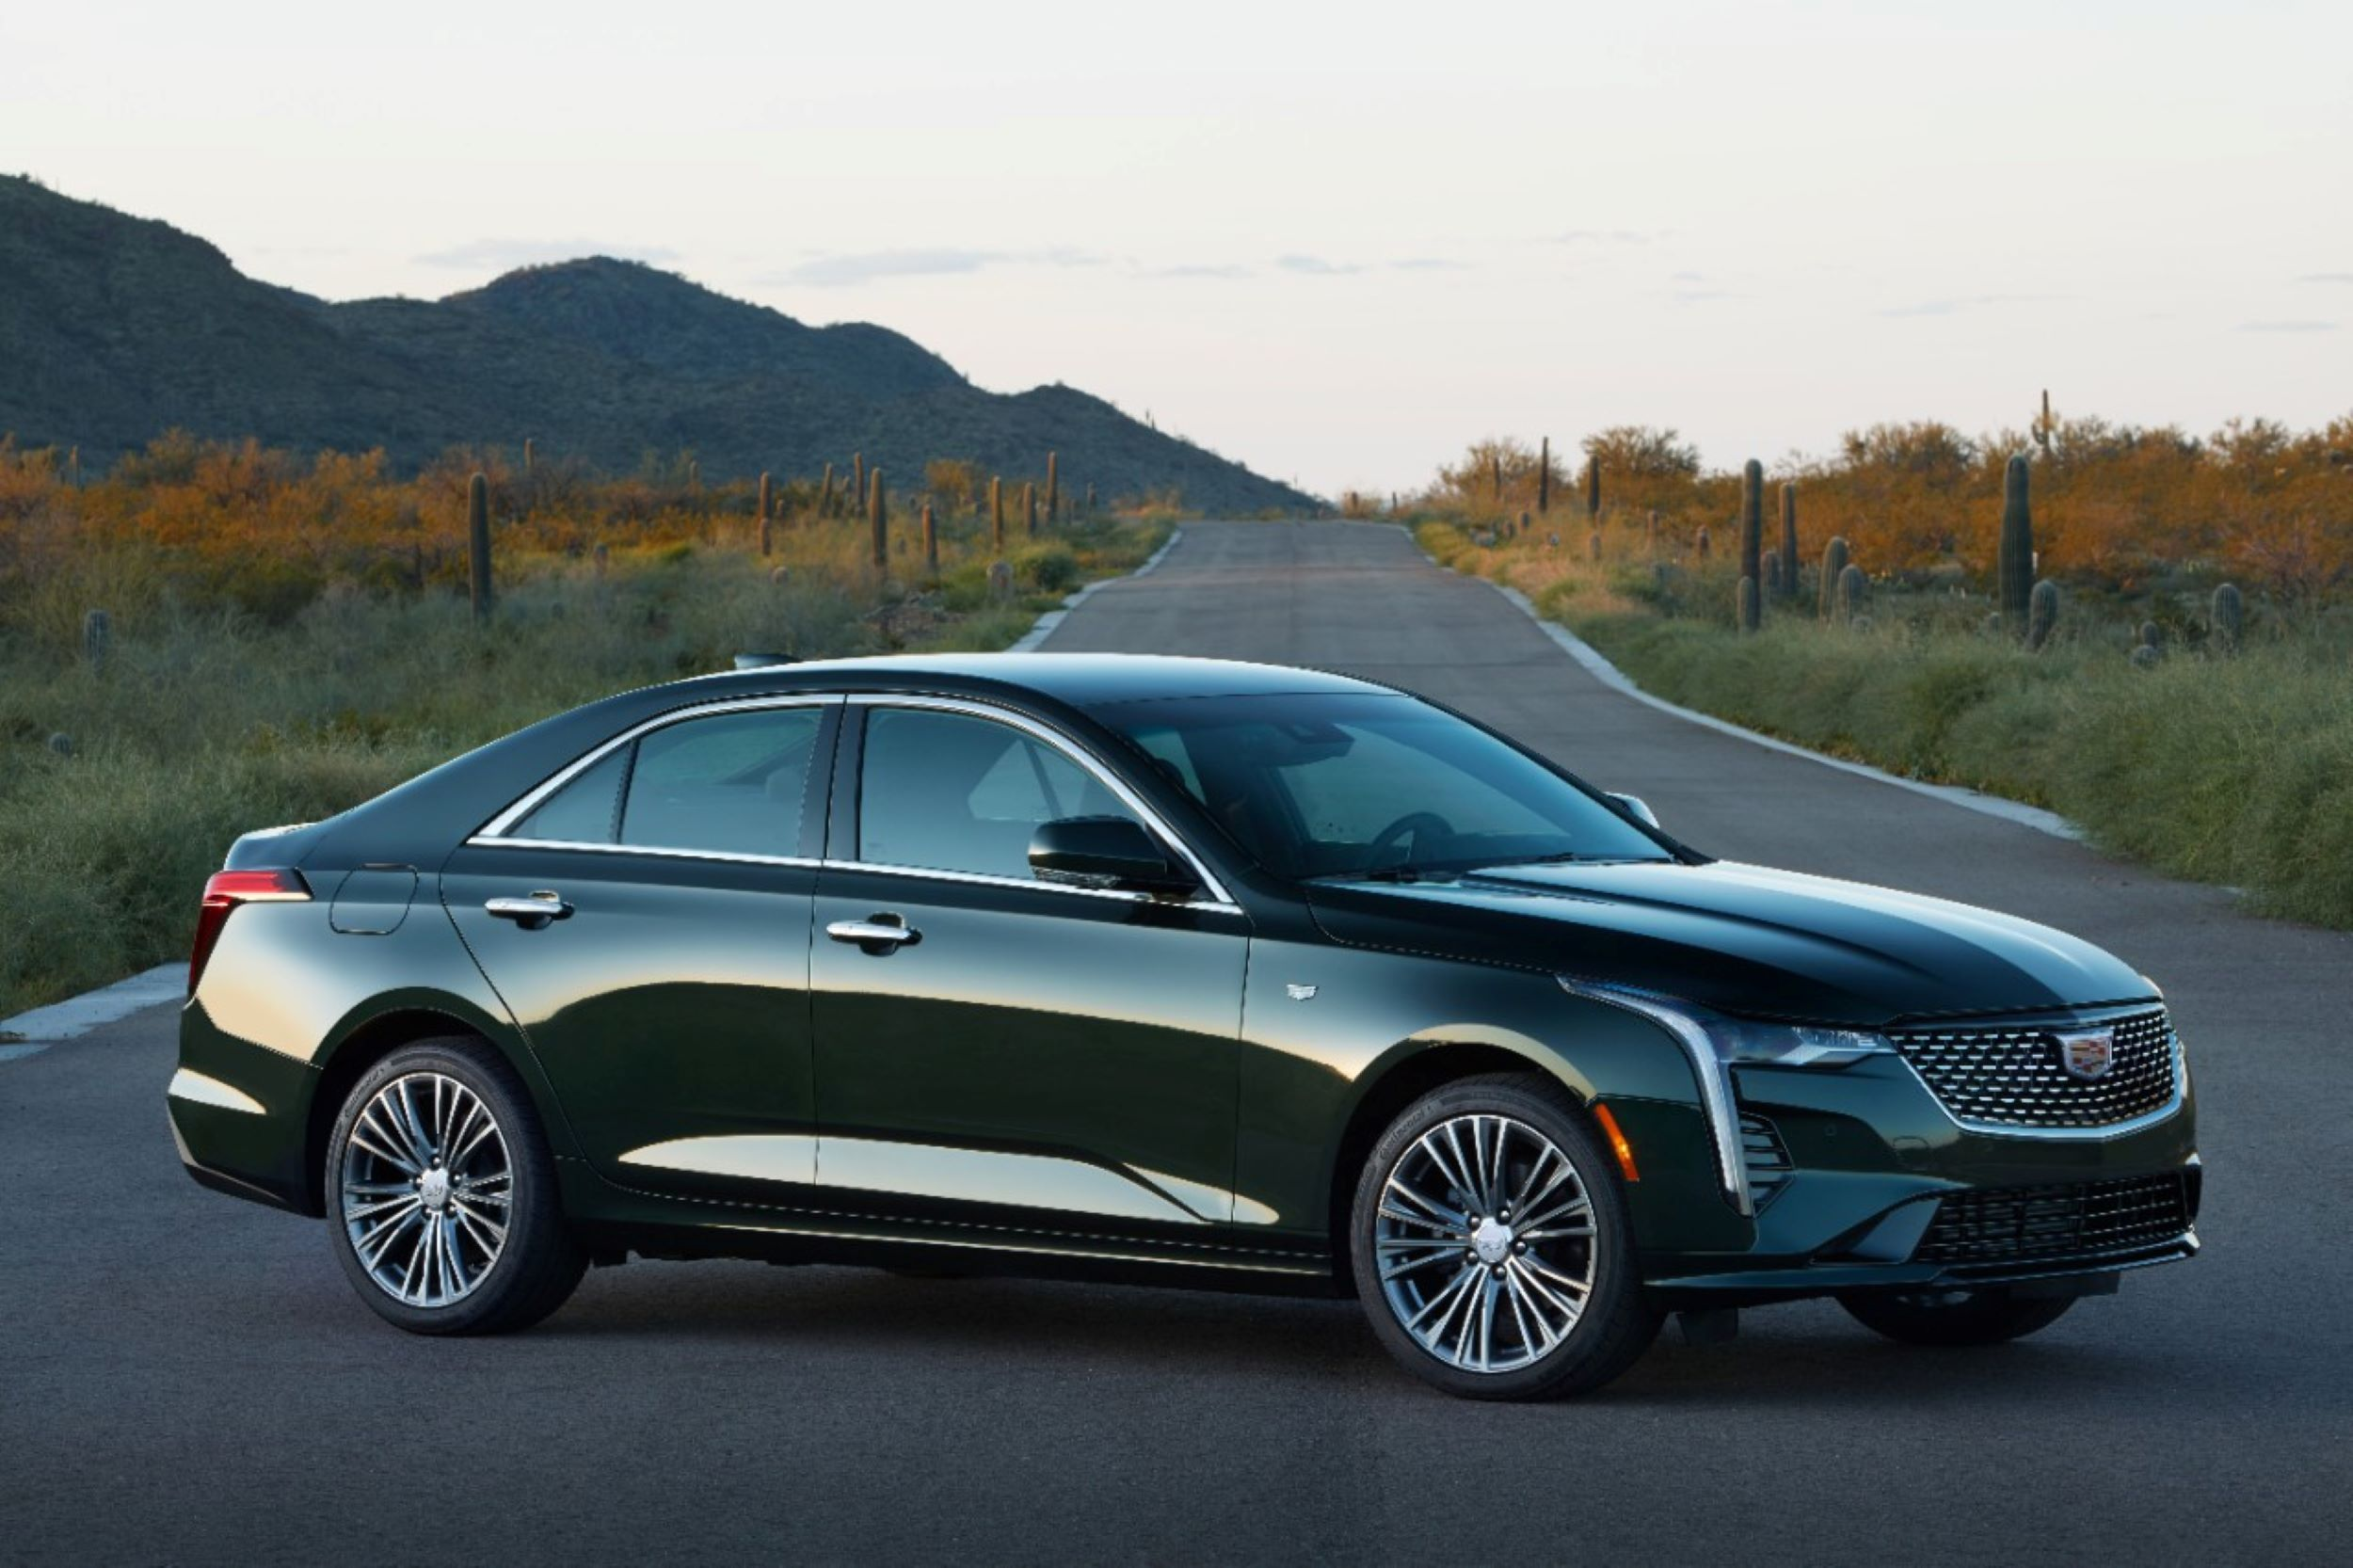 Cadillac's dynamic duo CT4 and CT5 sedans, bring rear-wheel drive thrills to every-day driving